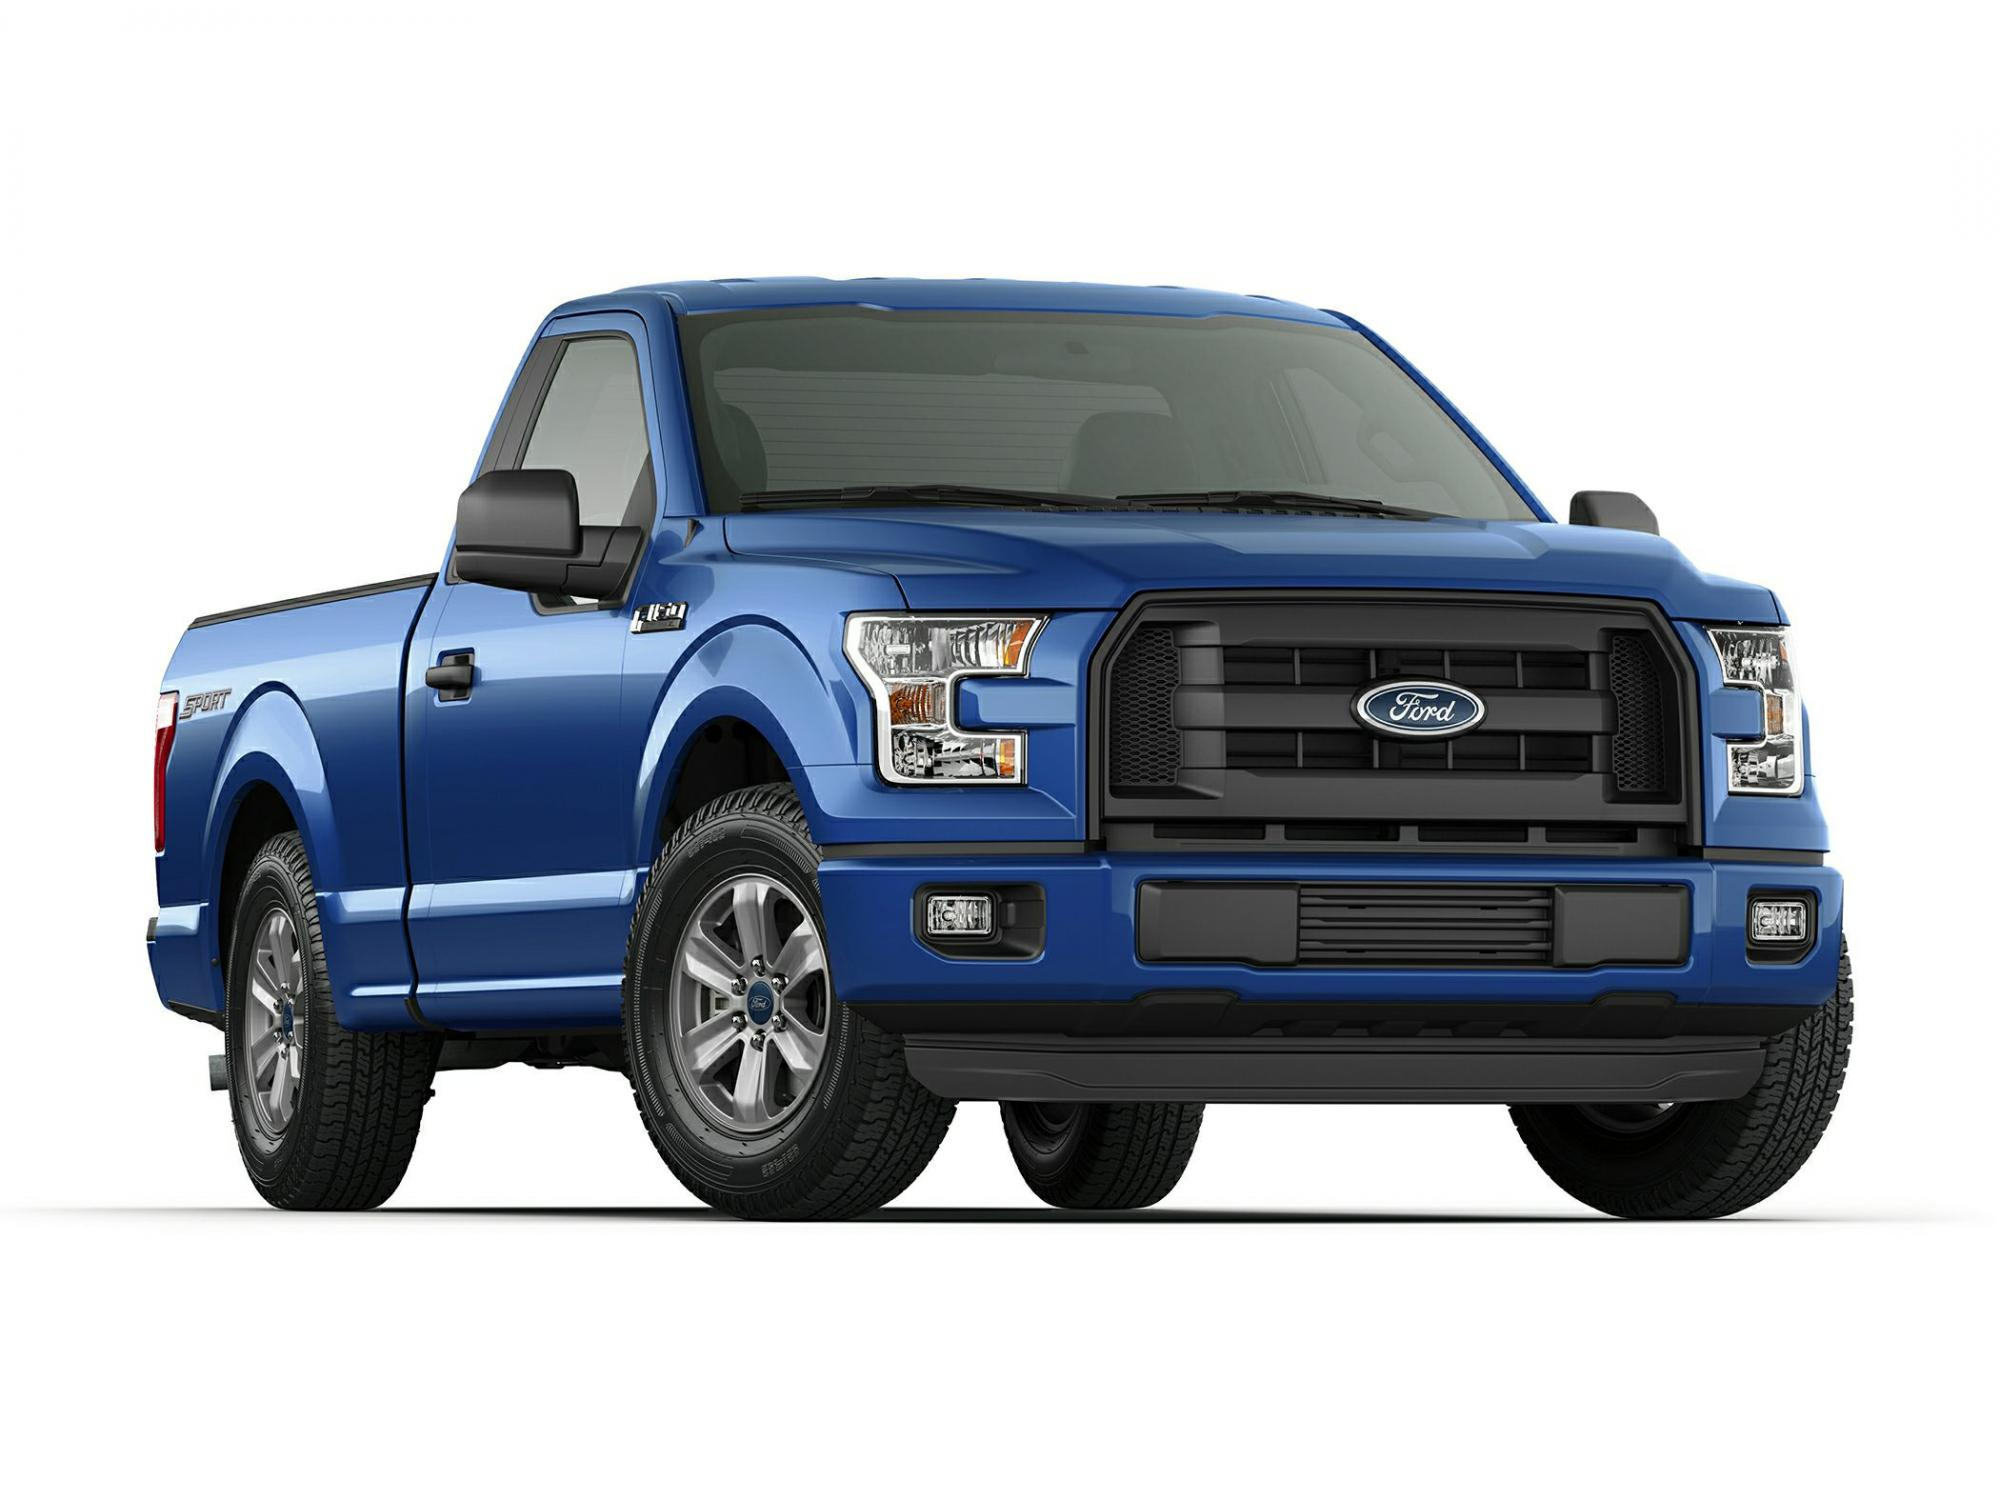 comparison ram 1500 crew cab limited 2015 vs ford f 150 xl regular cab 2015 suv drive. Black Bedroom Furniture Sets. Home Design Ideas